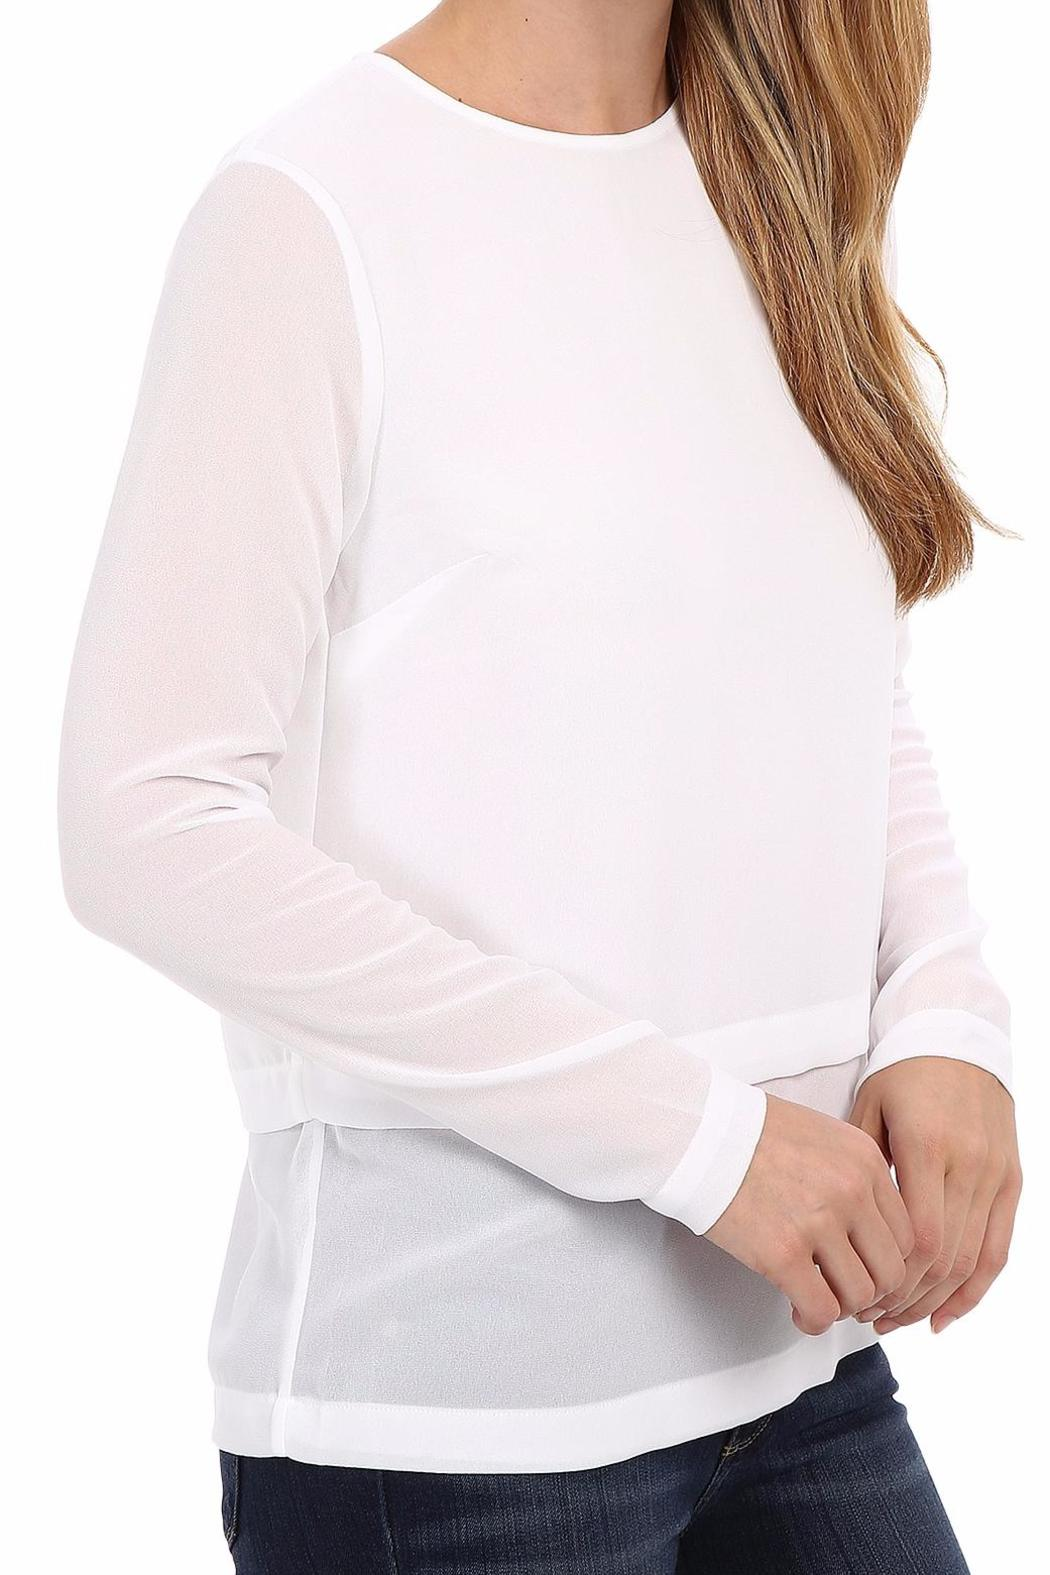 Michael by Michael Kors Double Layered Blouse - Front Full Image